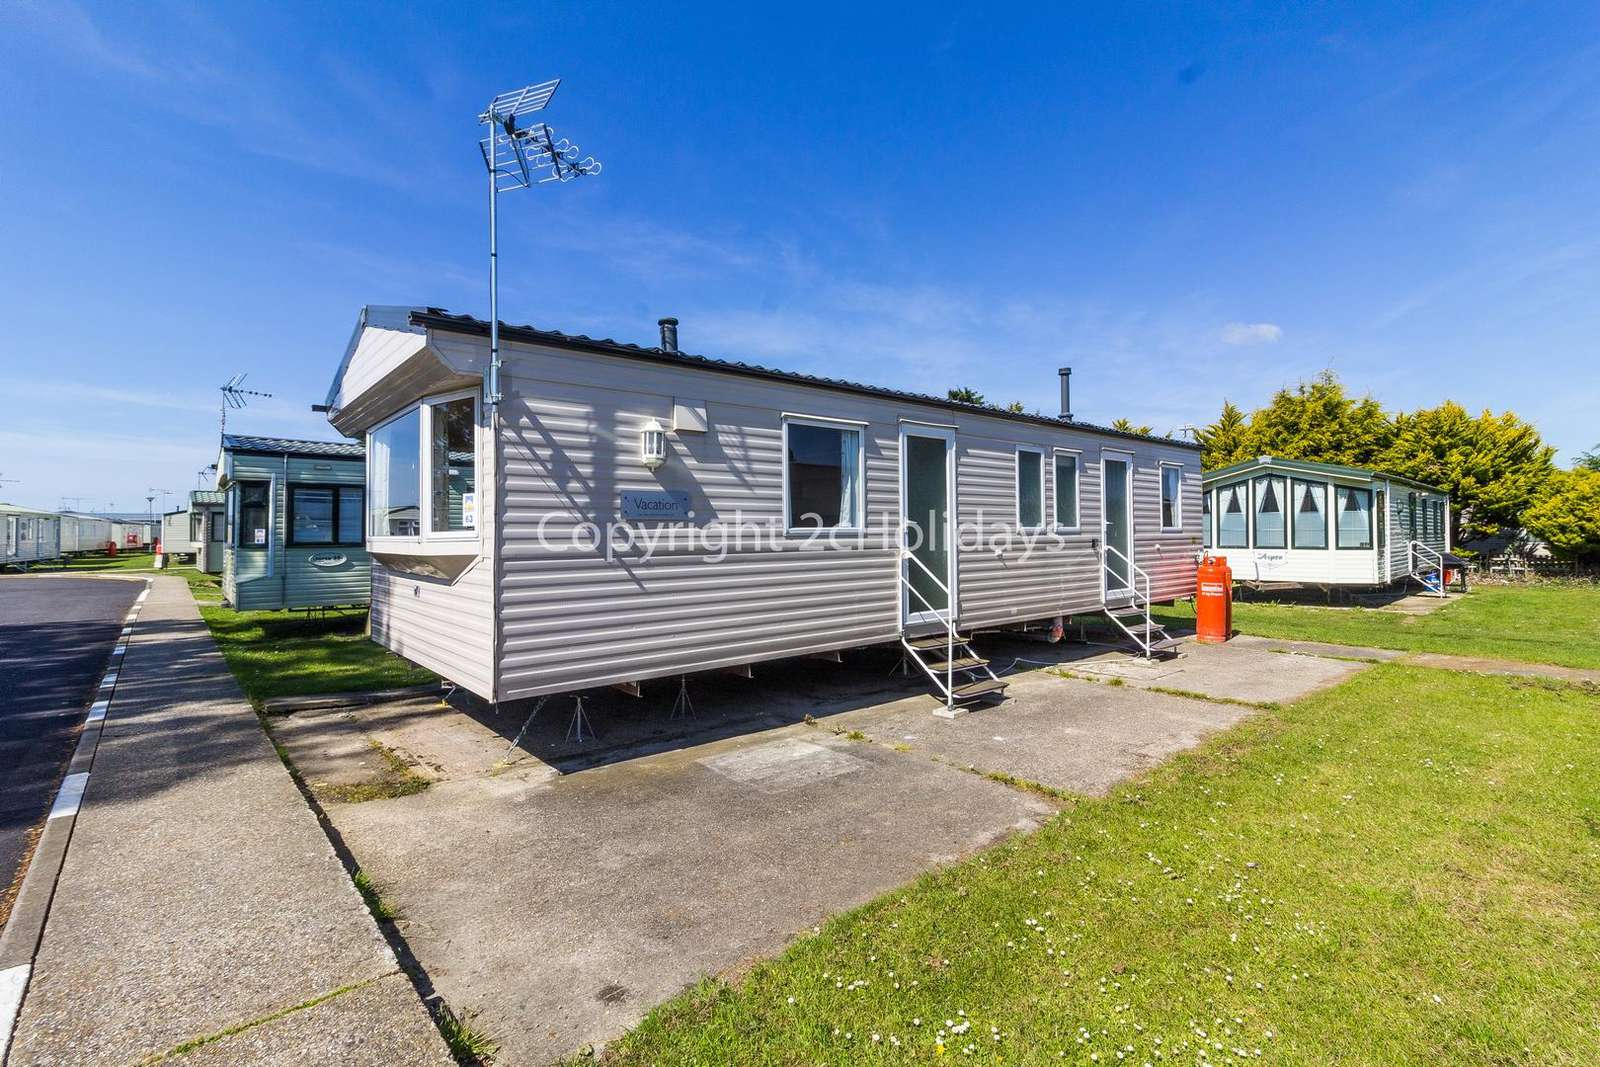 Spoilt for choice, you have access to 3 holiday park amenities!